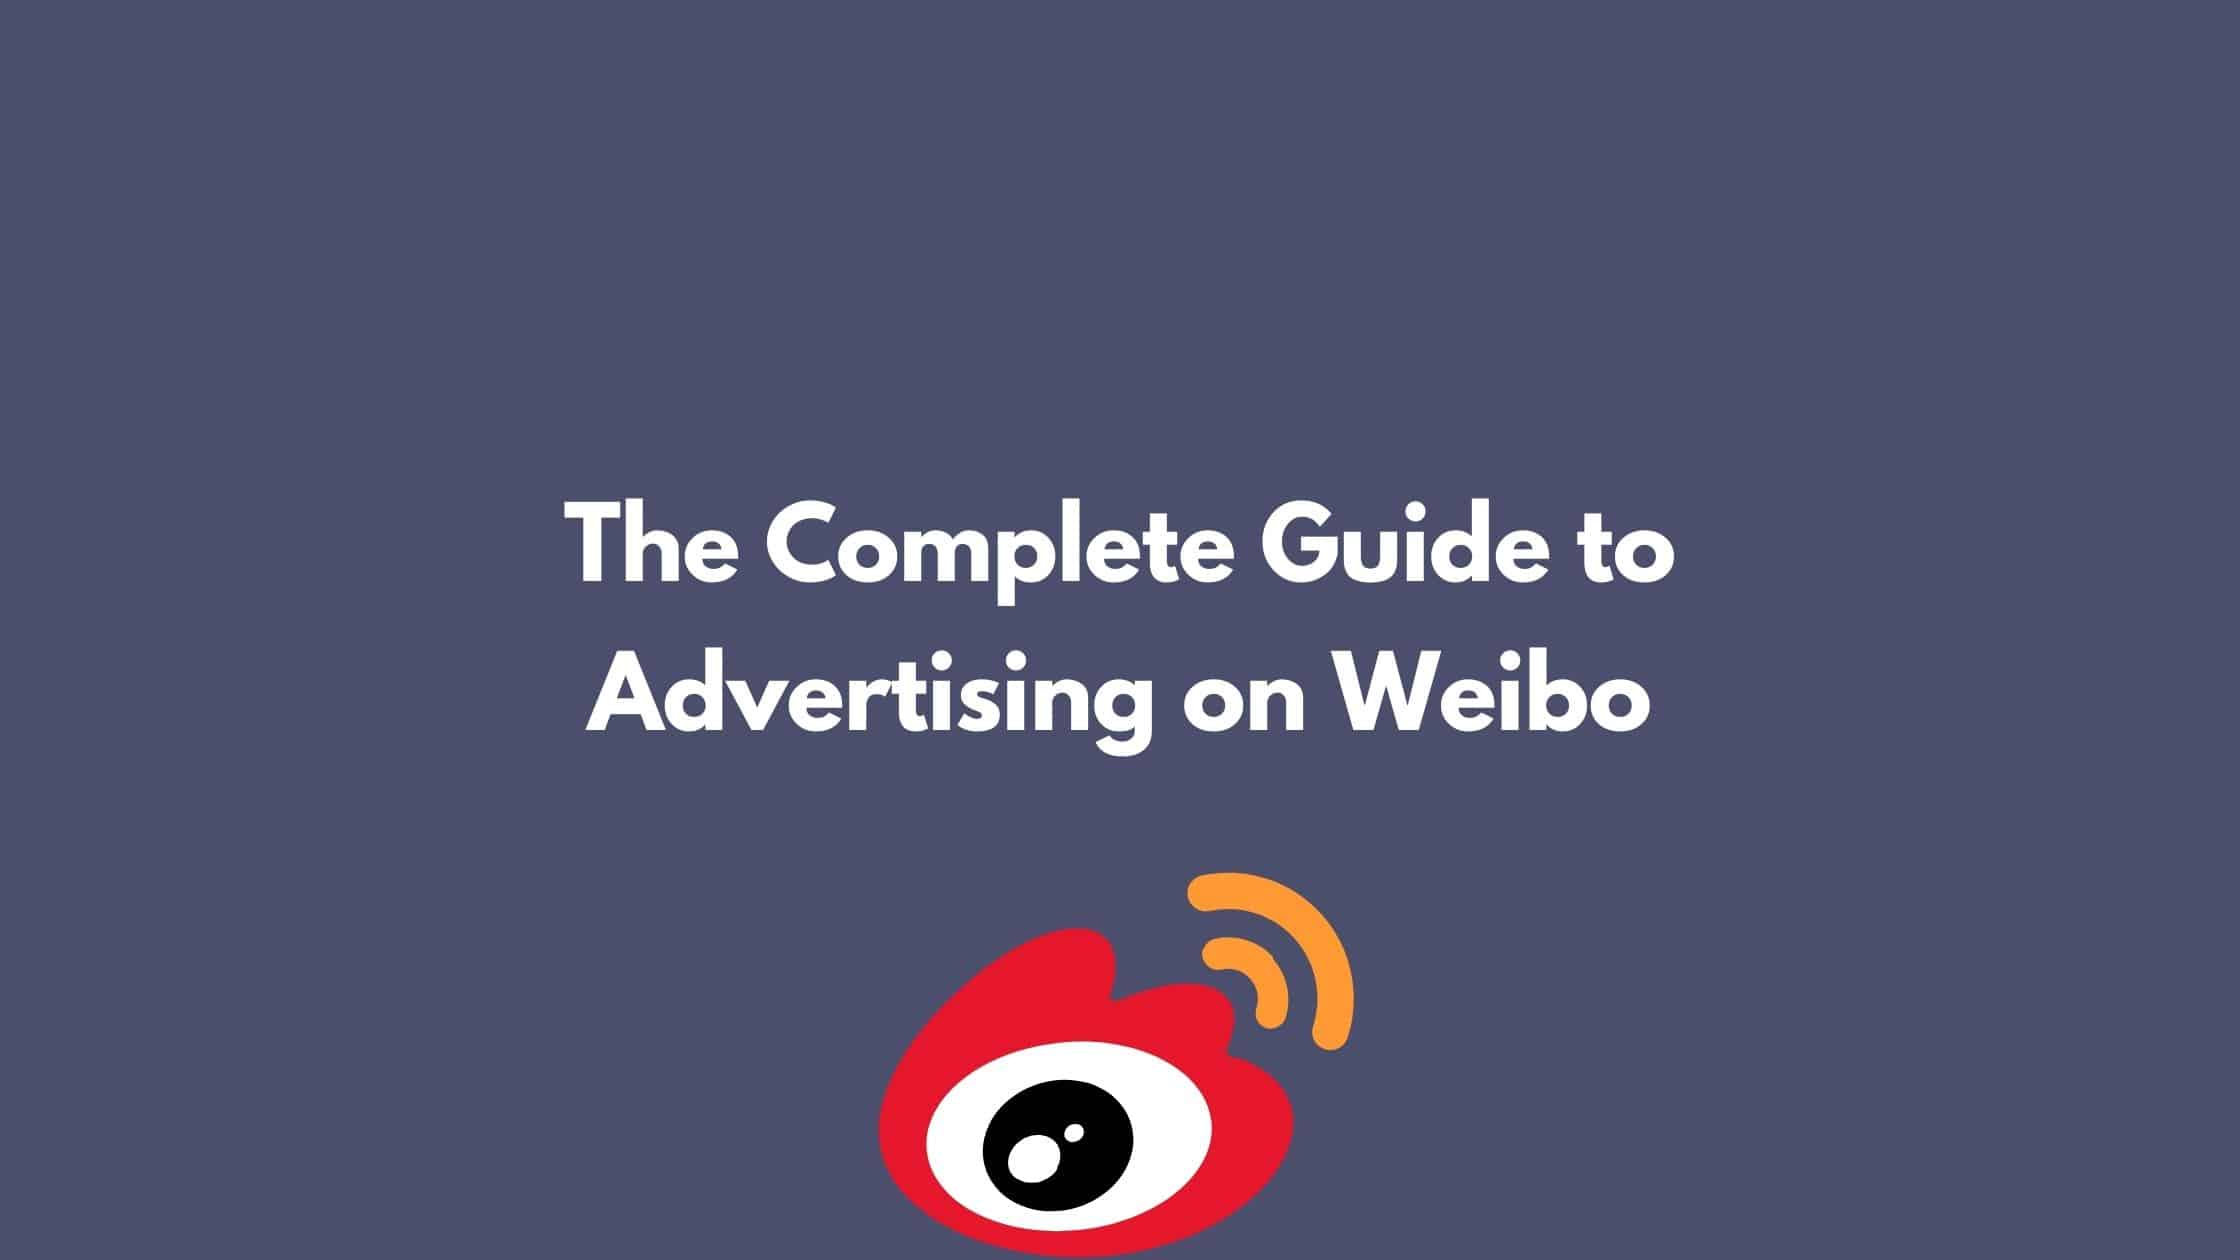 The Complete Guide to Advertising on Weibo